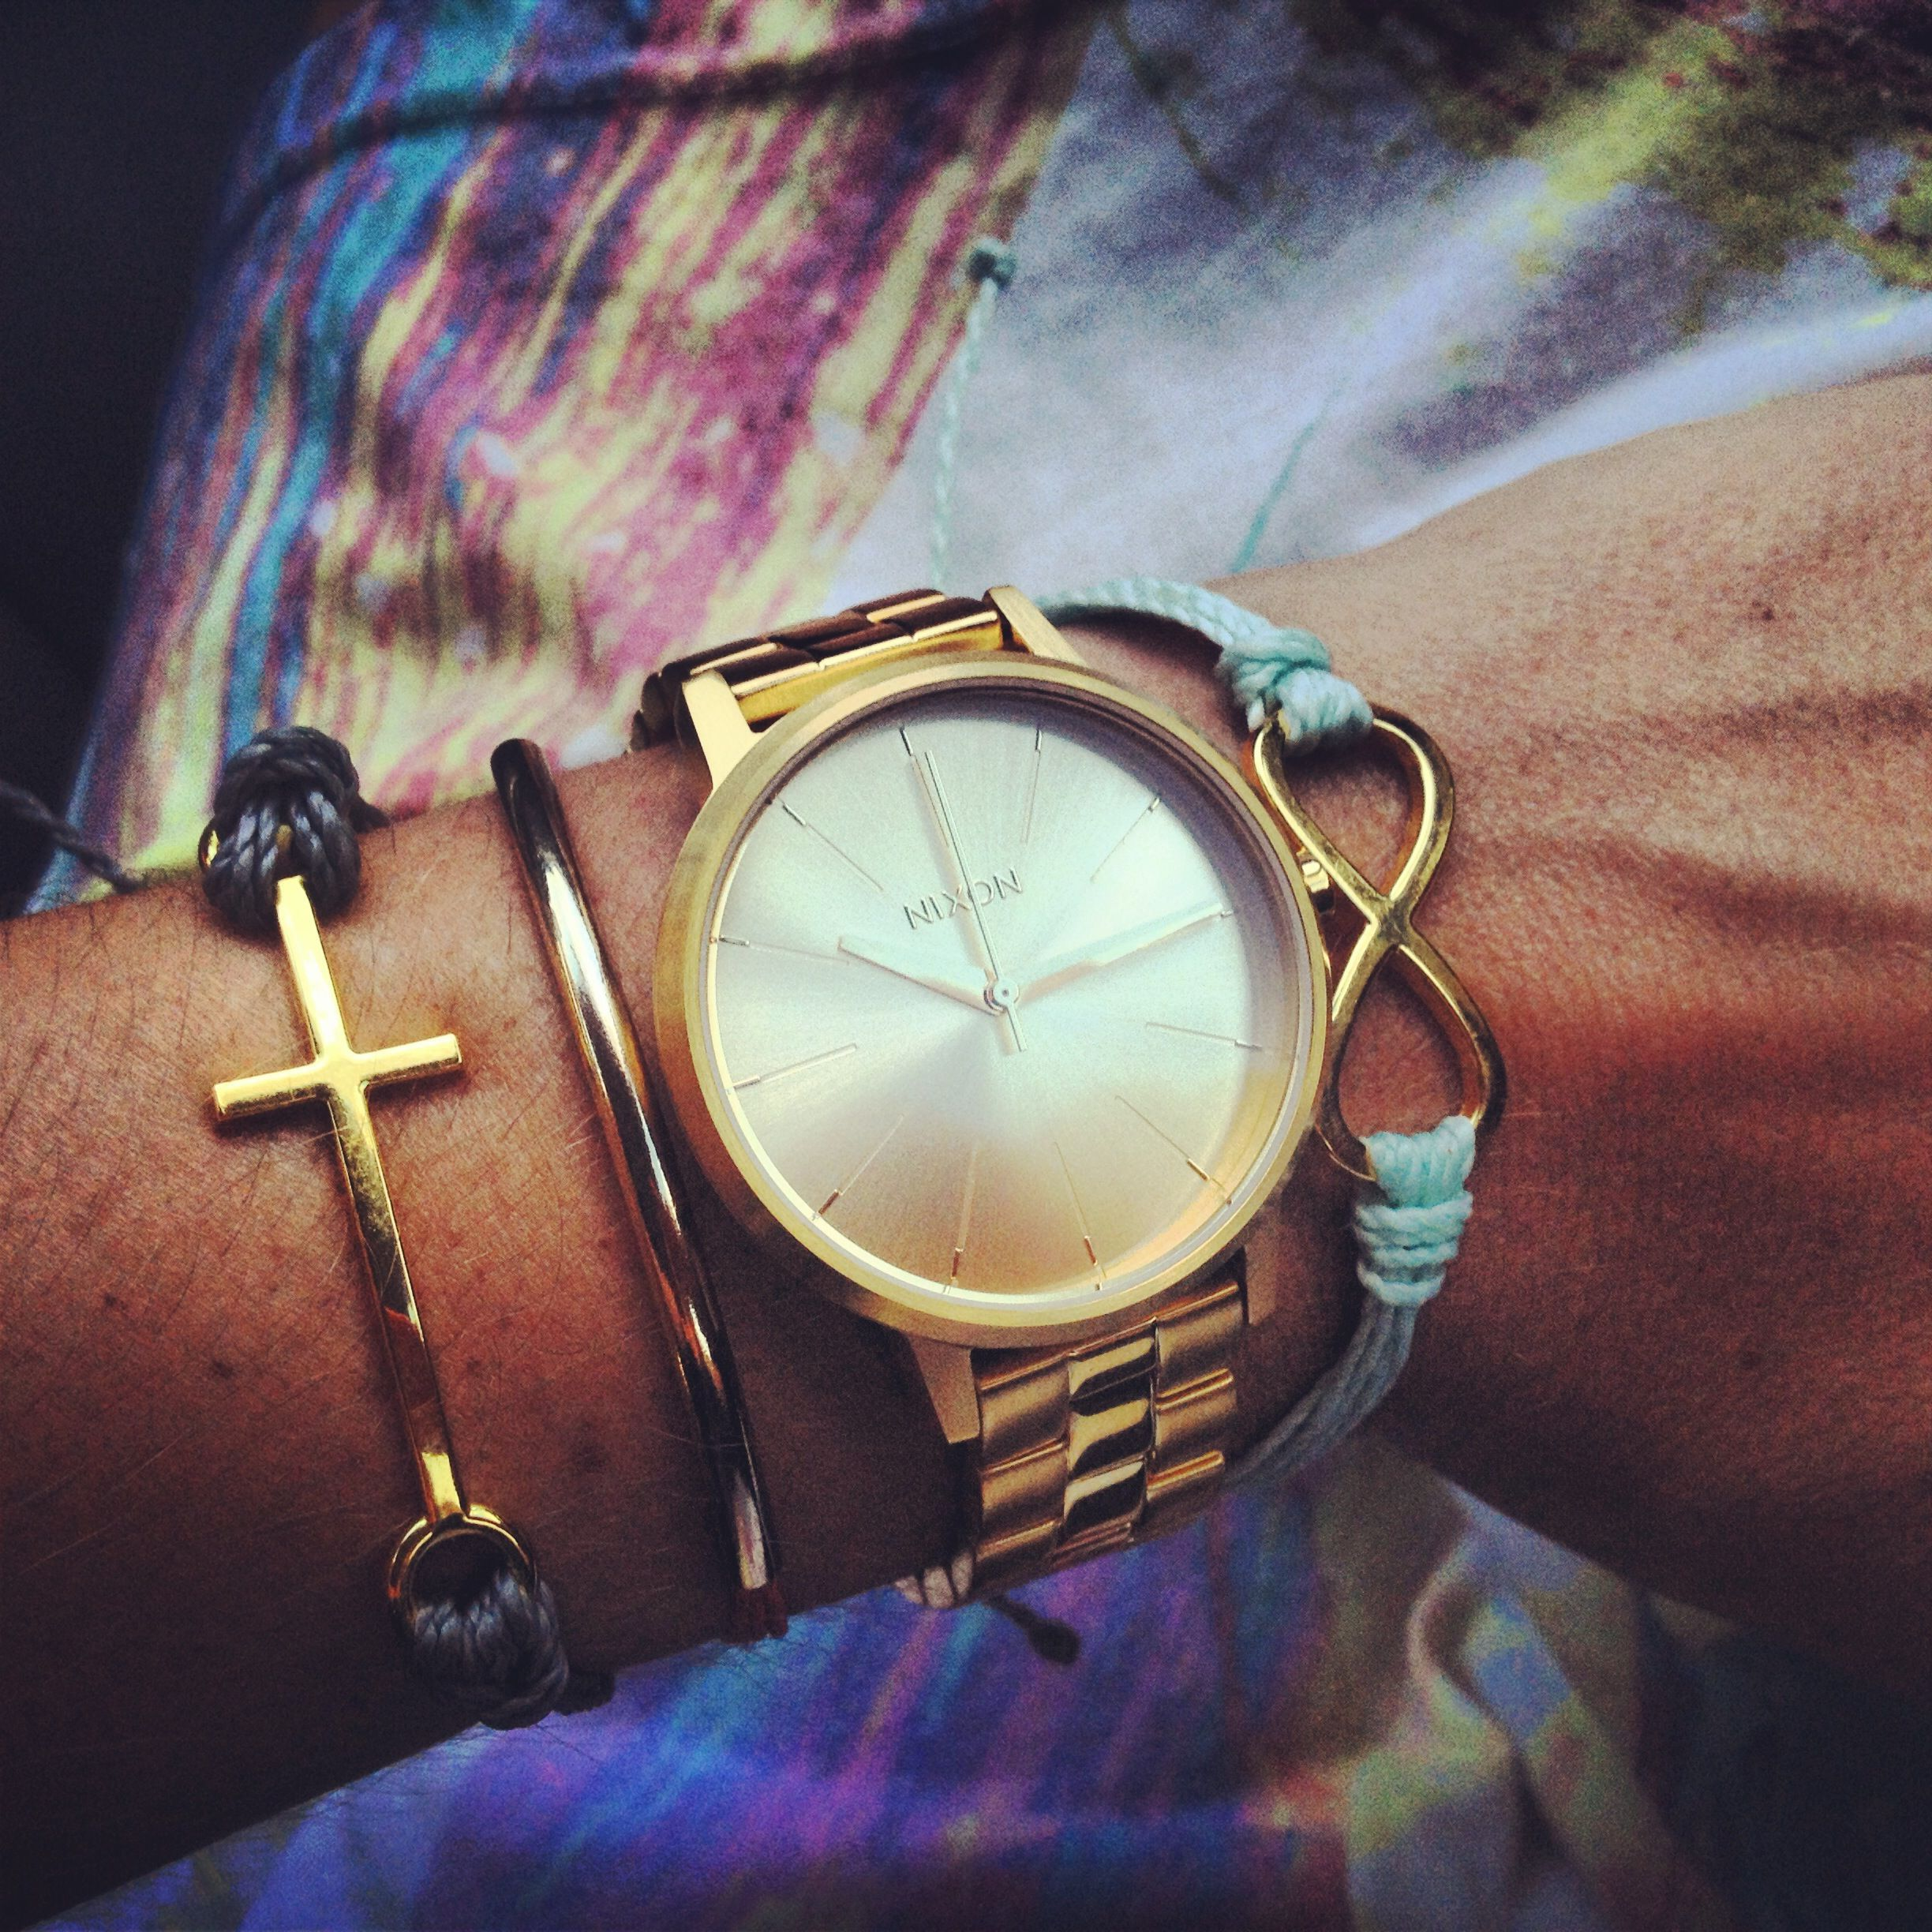 nixon x puravida The Kensington What time is it Watches